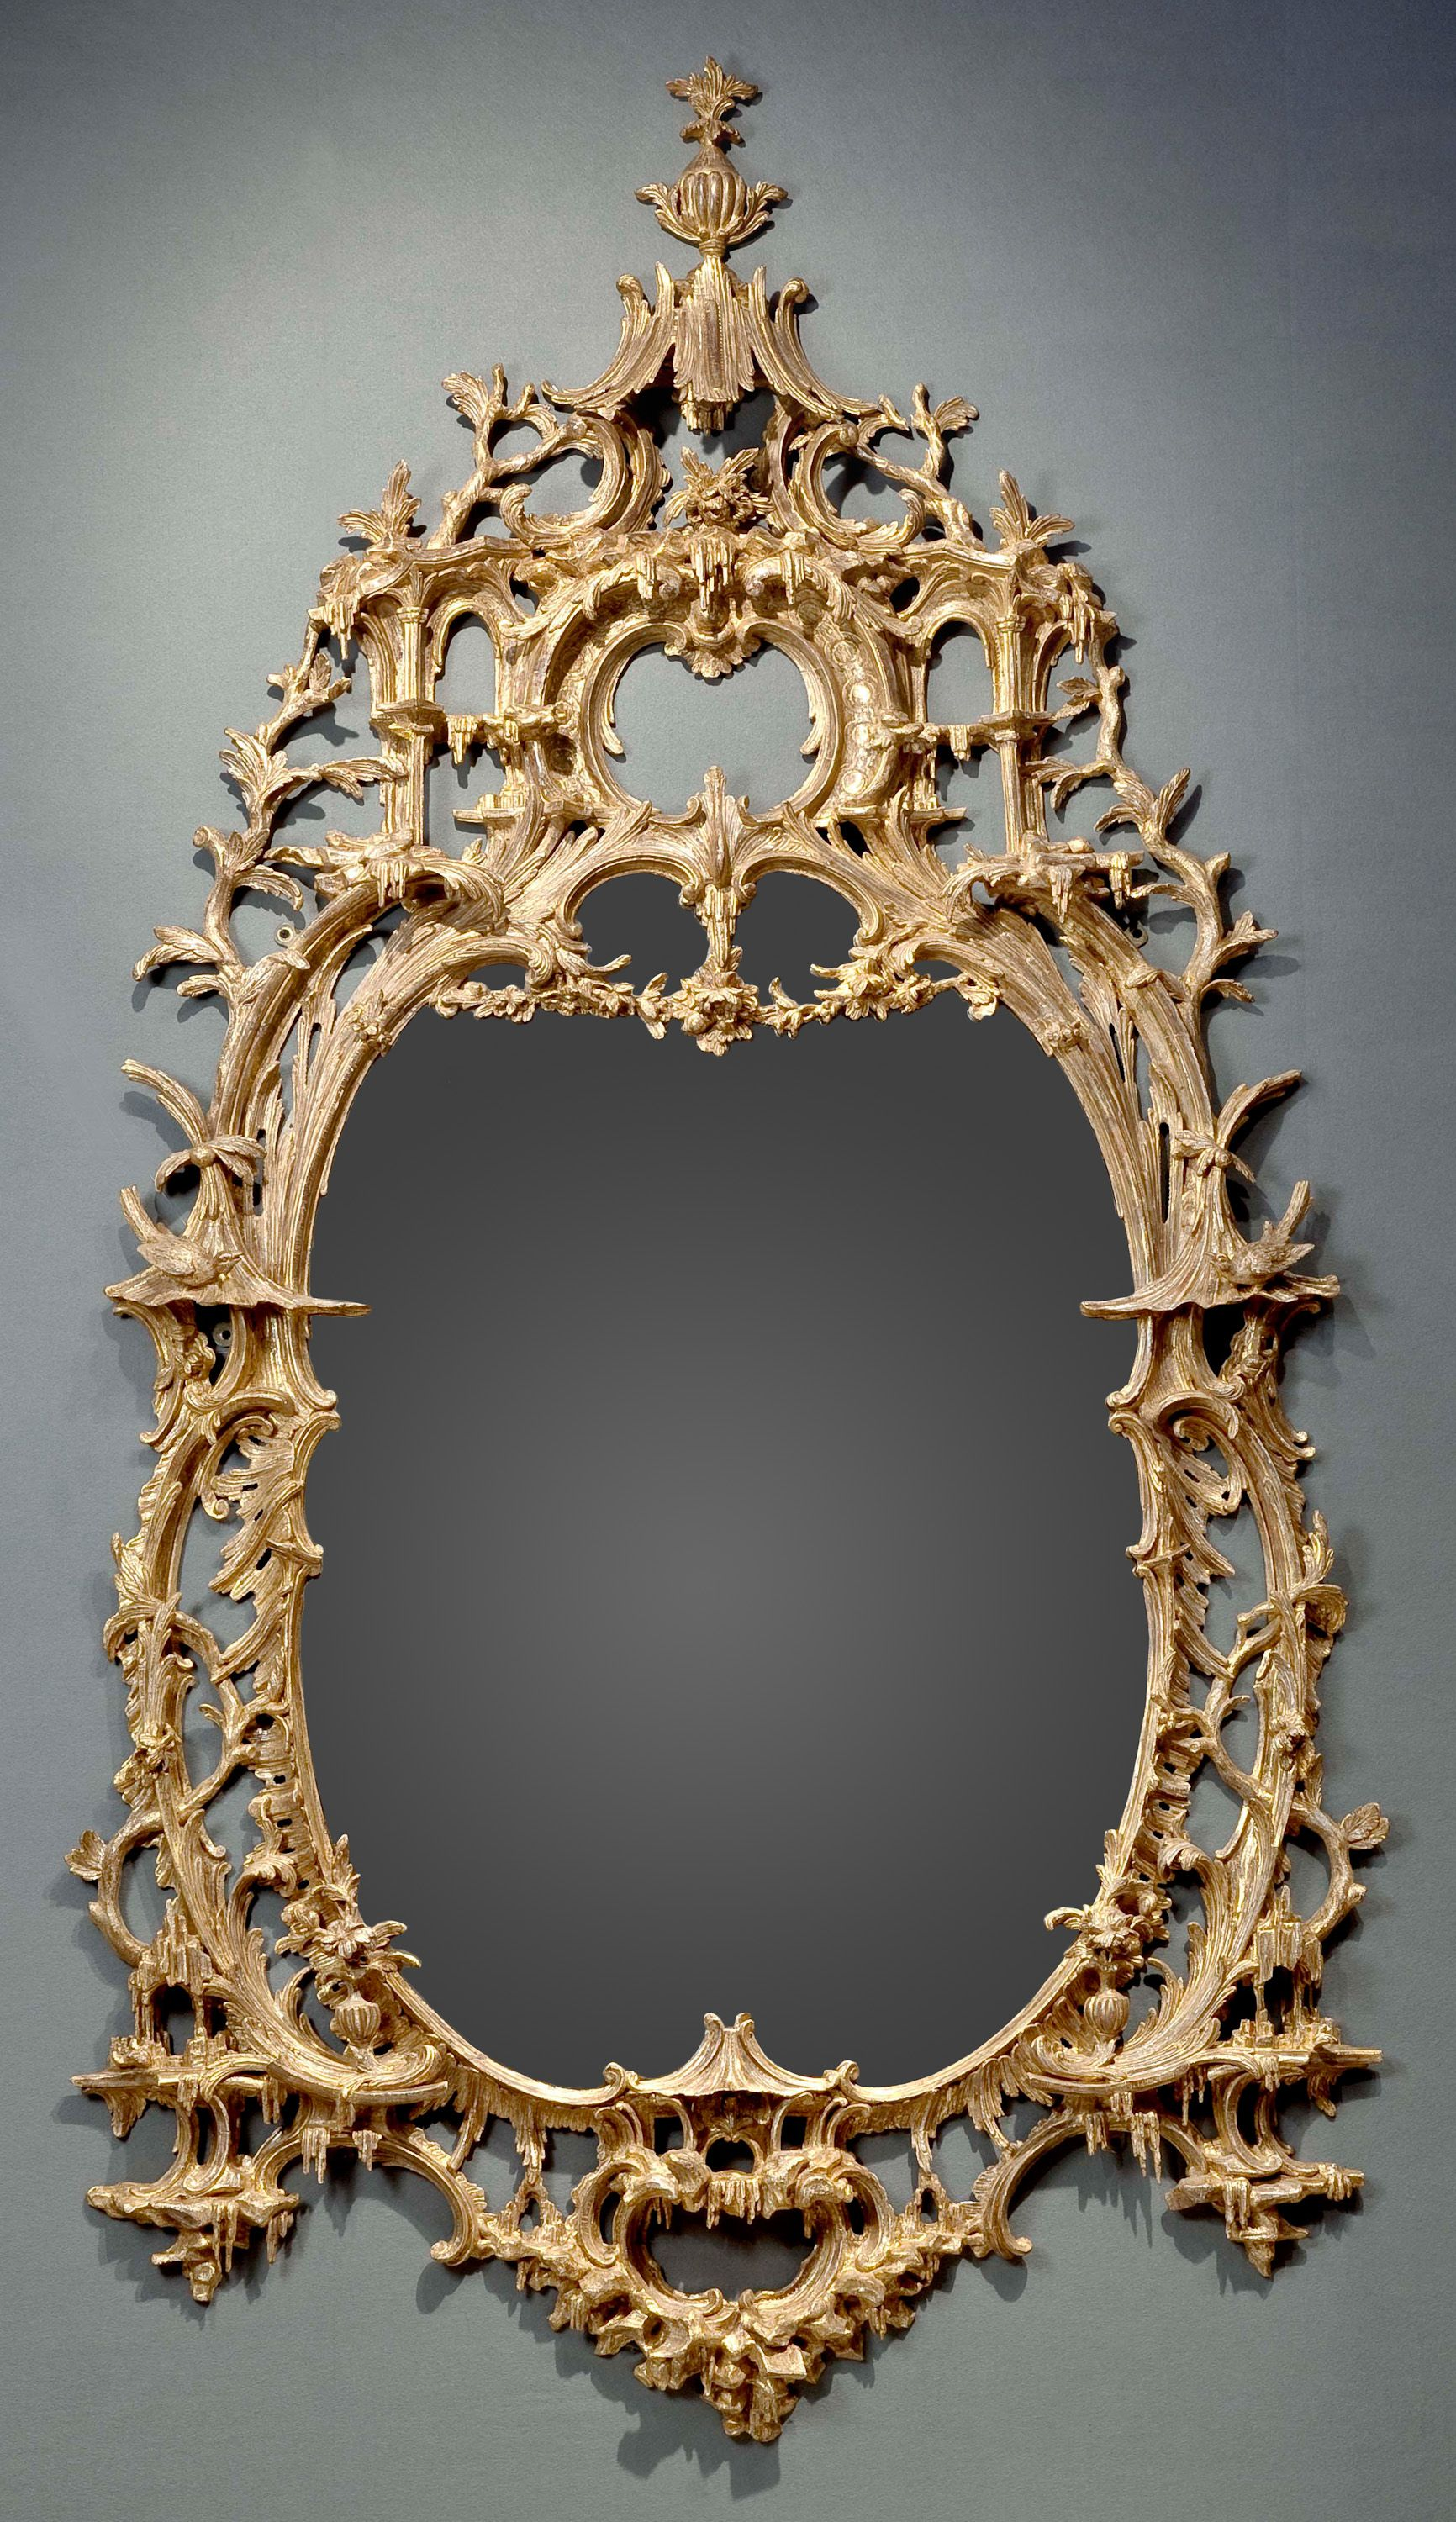 An Exceptional English Rococo Carved And Gilded Mirror Frame In The Style Of Thomas Johnson 1750 1760 Ramki Zerkalo Fotoramka